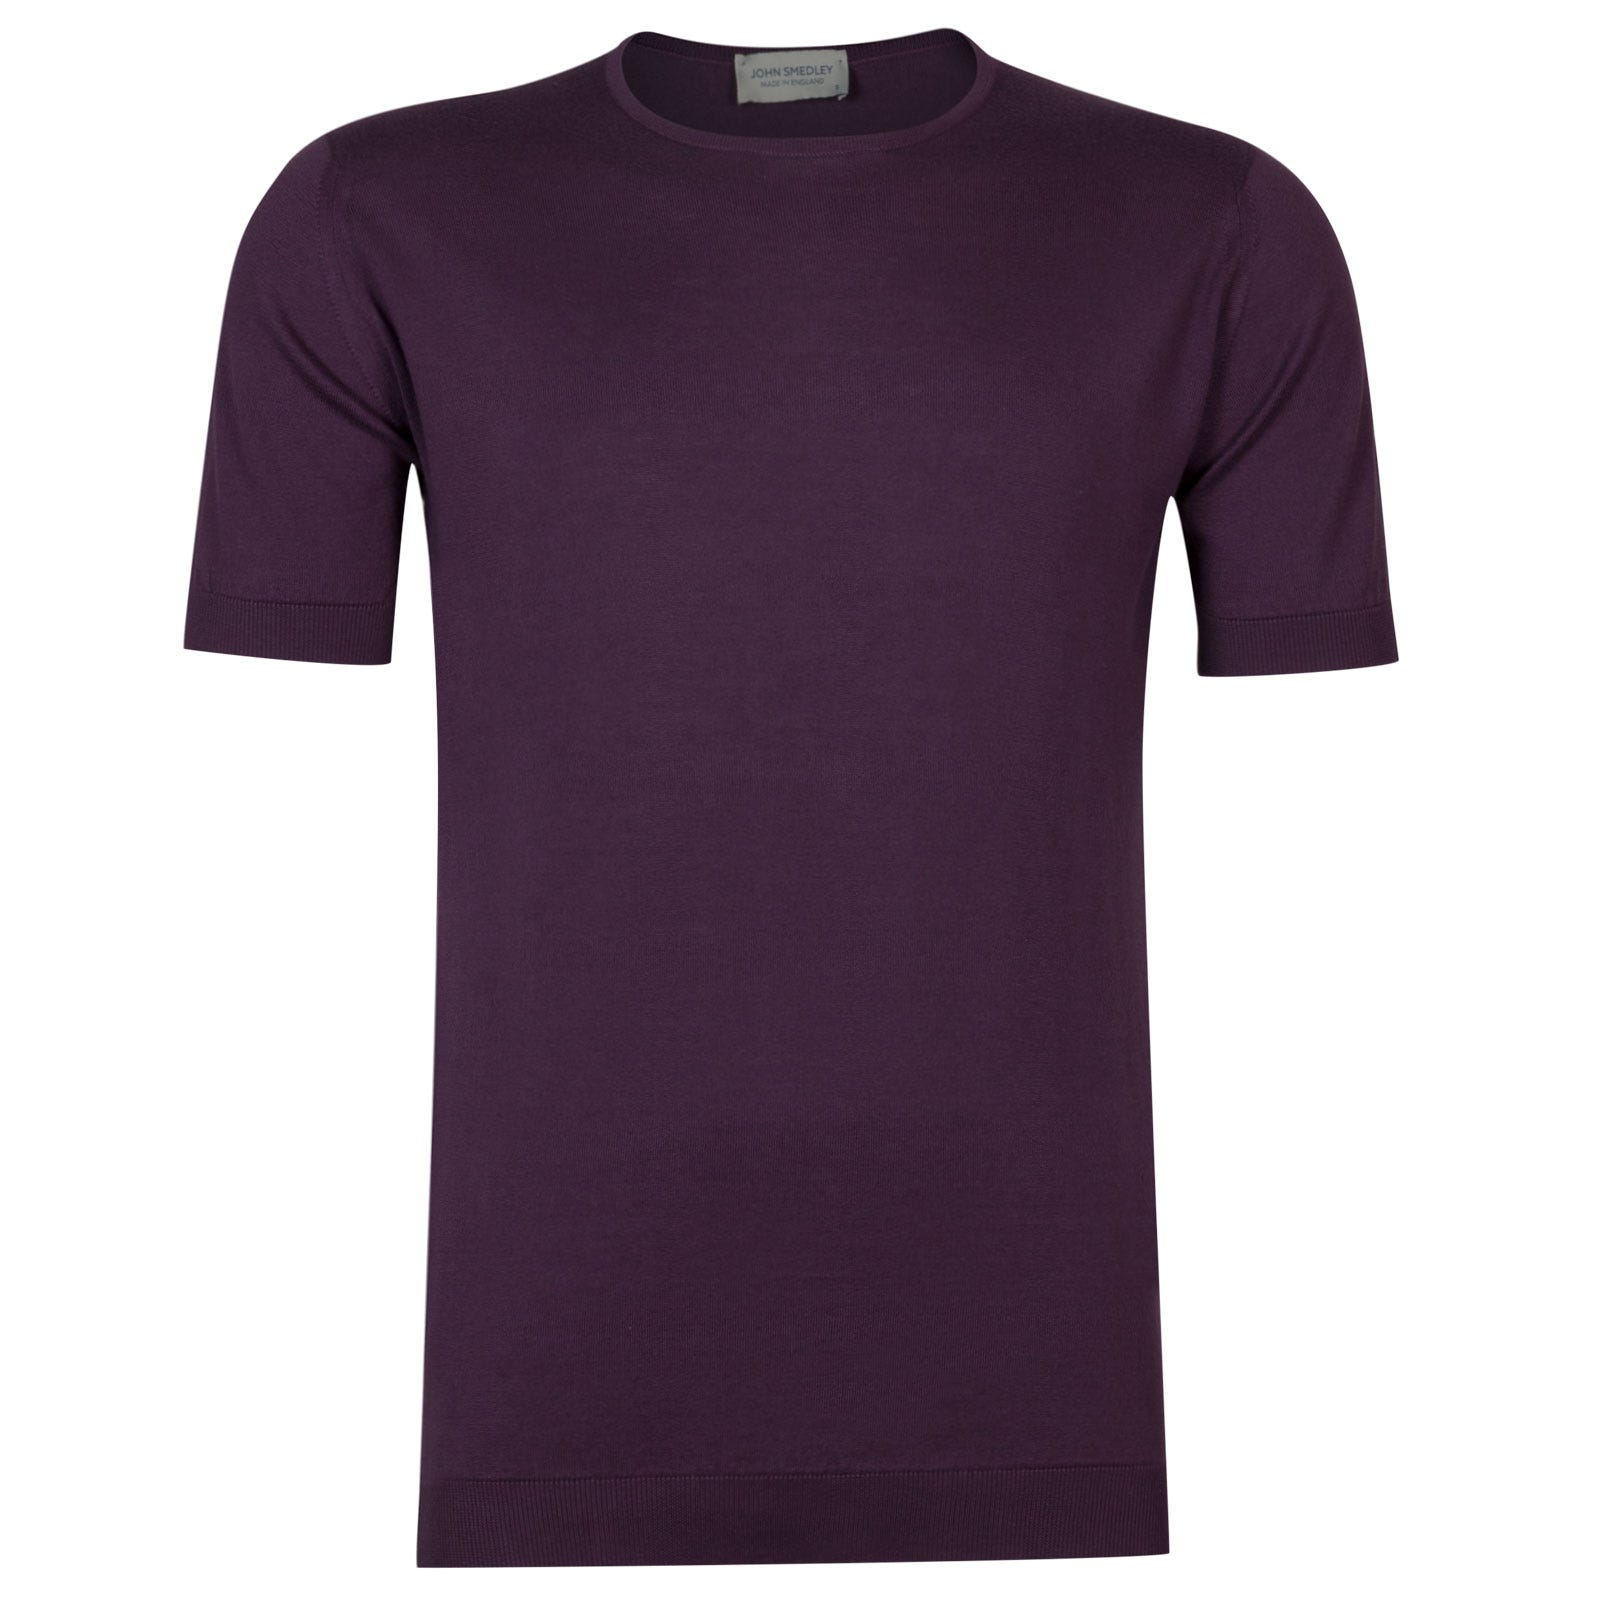 belden-bauhaus-purple-Xxl